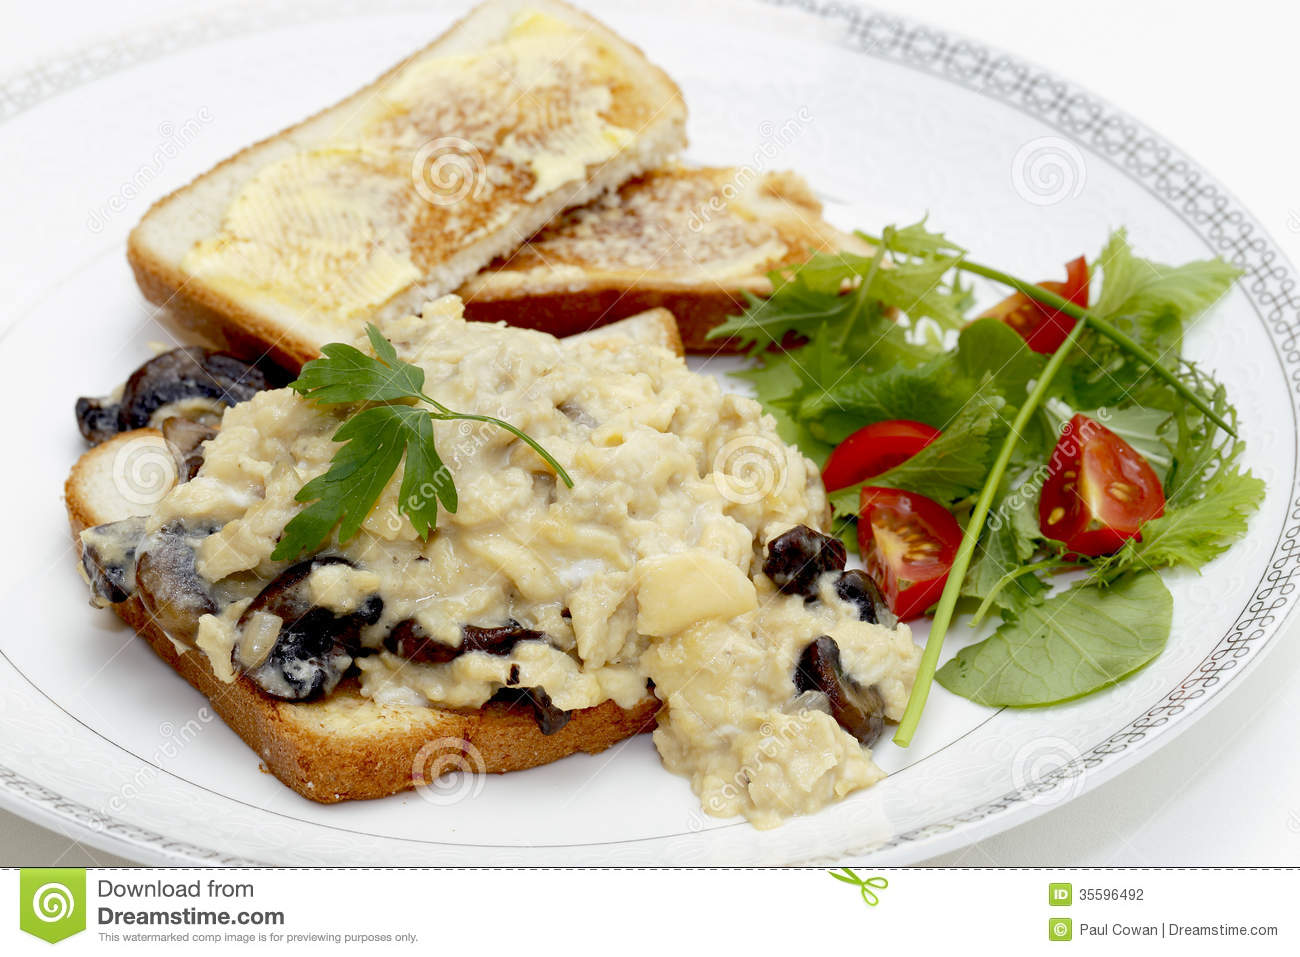 ... eggs on toast made with fried mushrooms and shallots served with a